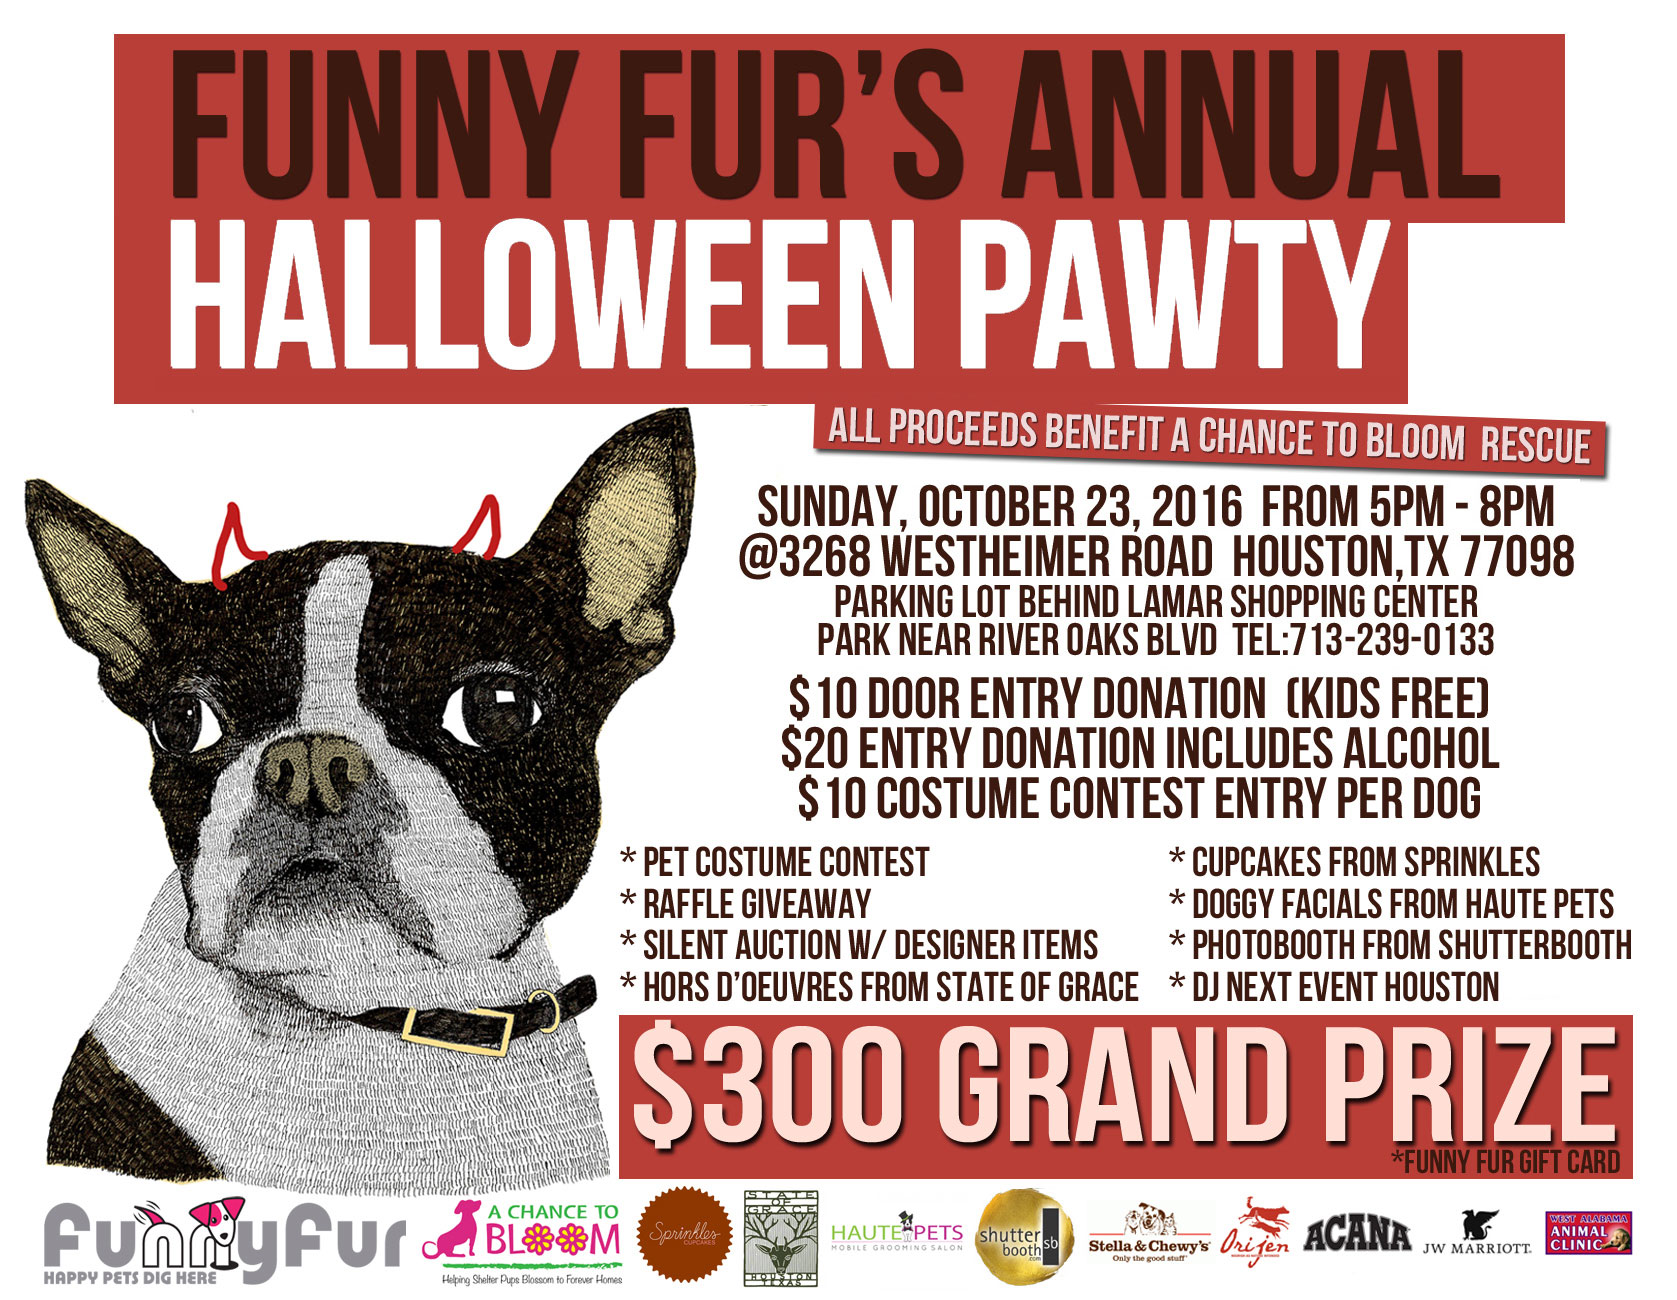 Pet costume contests and giveaways